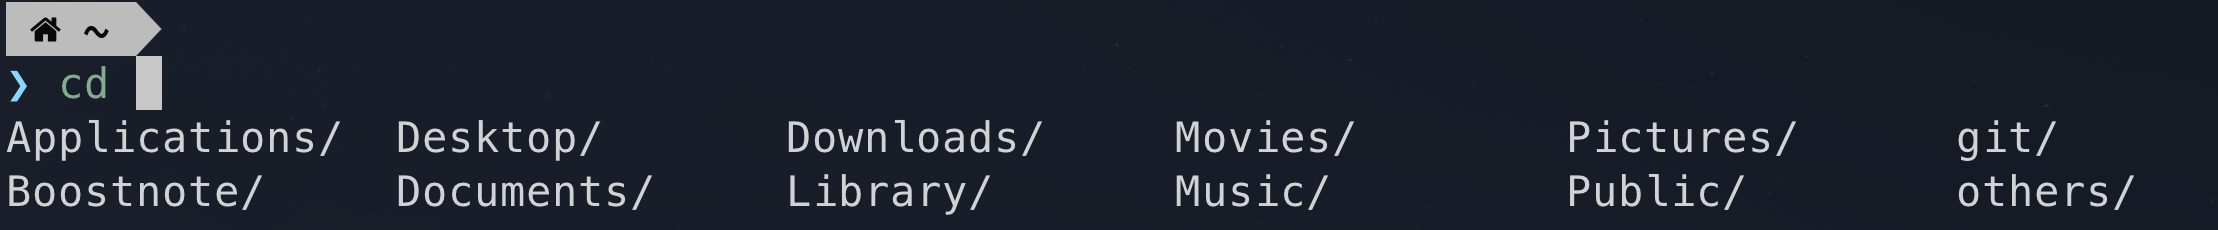 zsh-completions.png